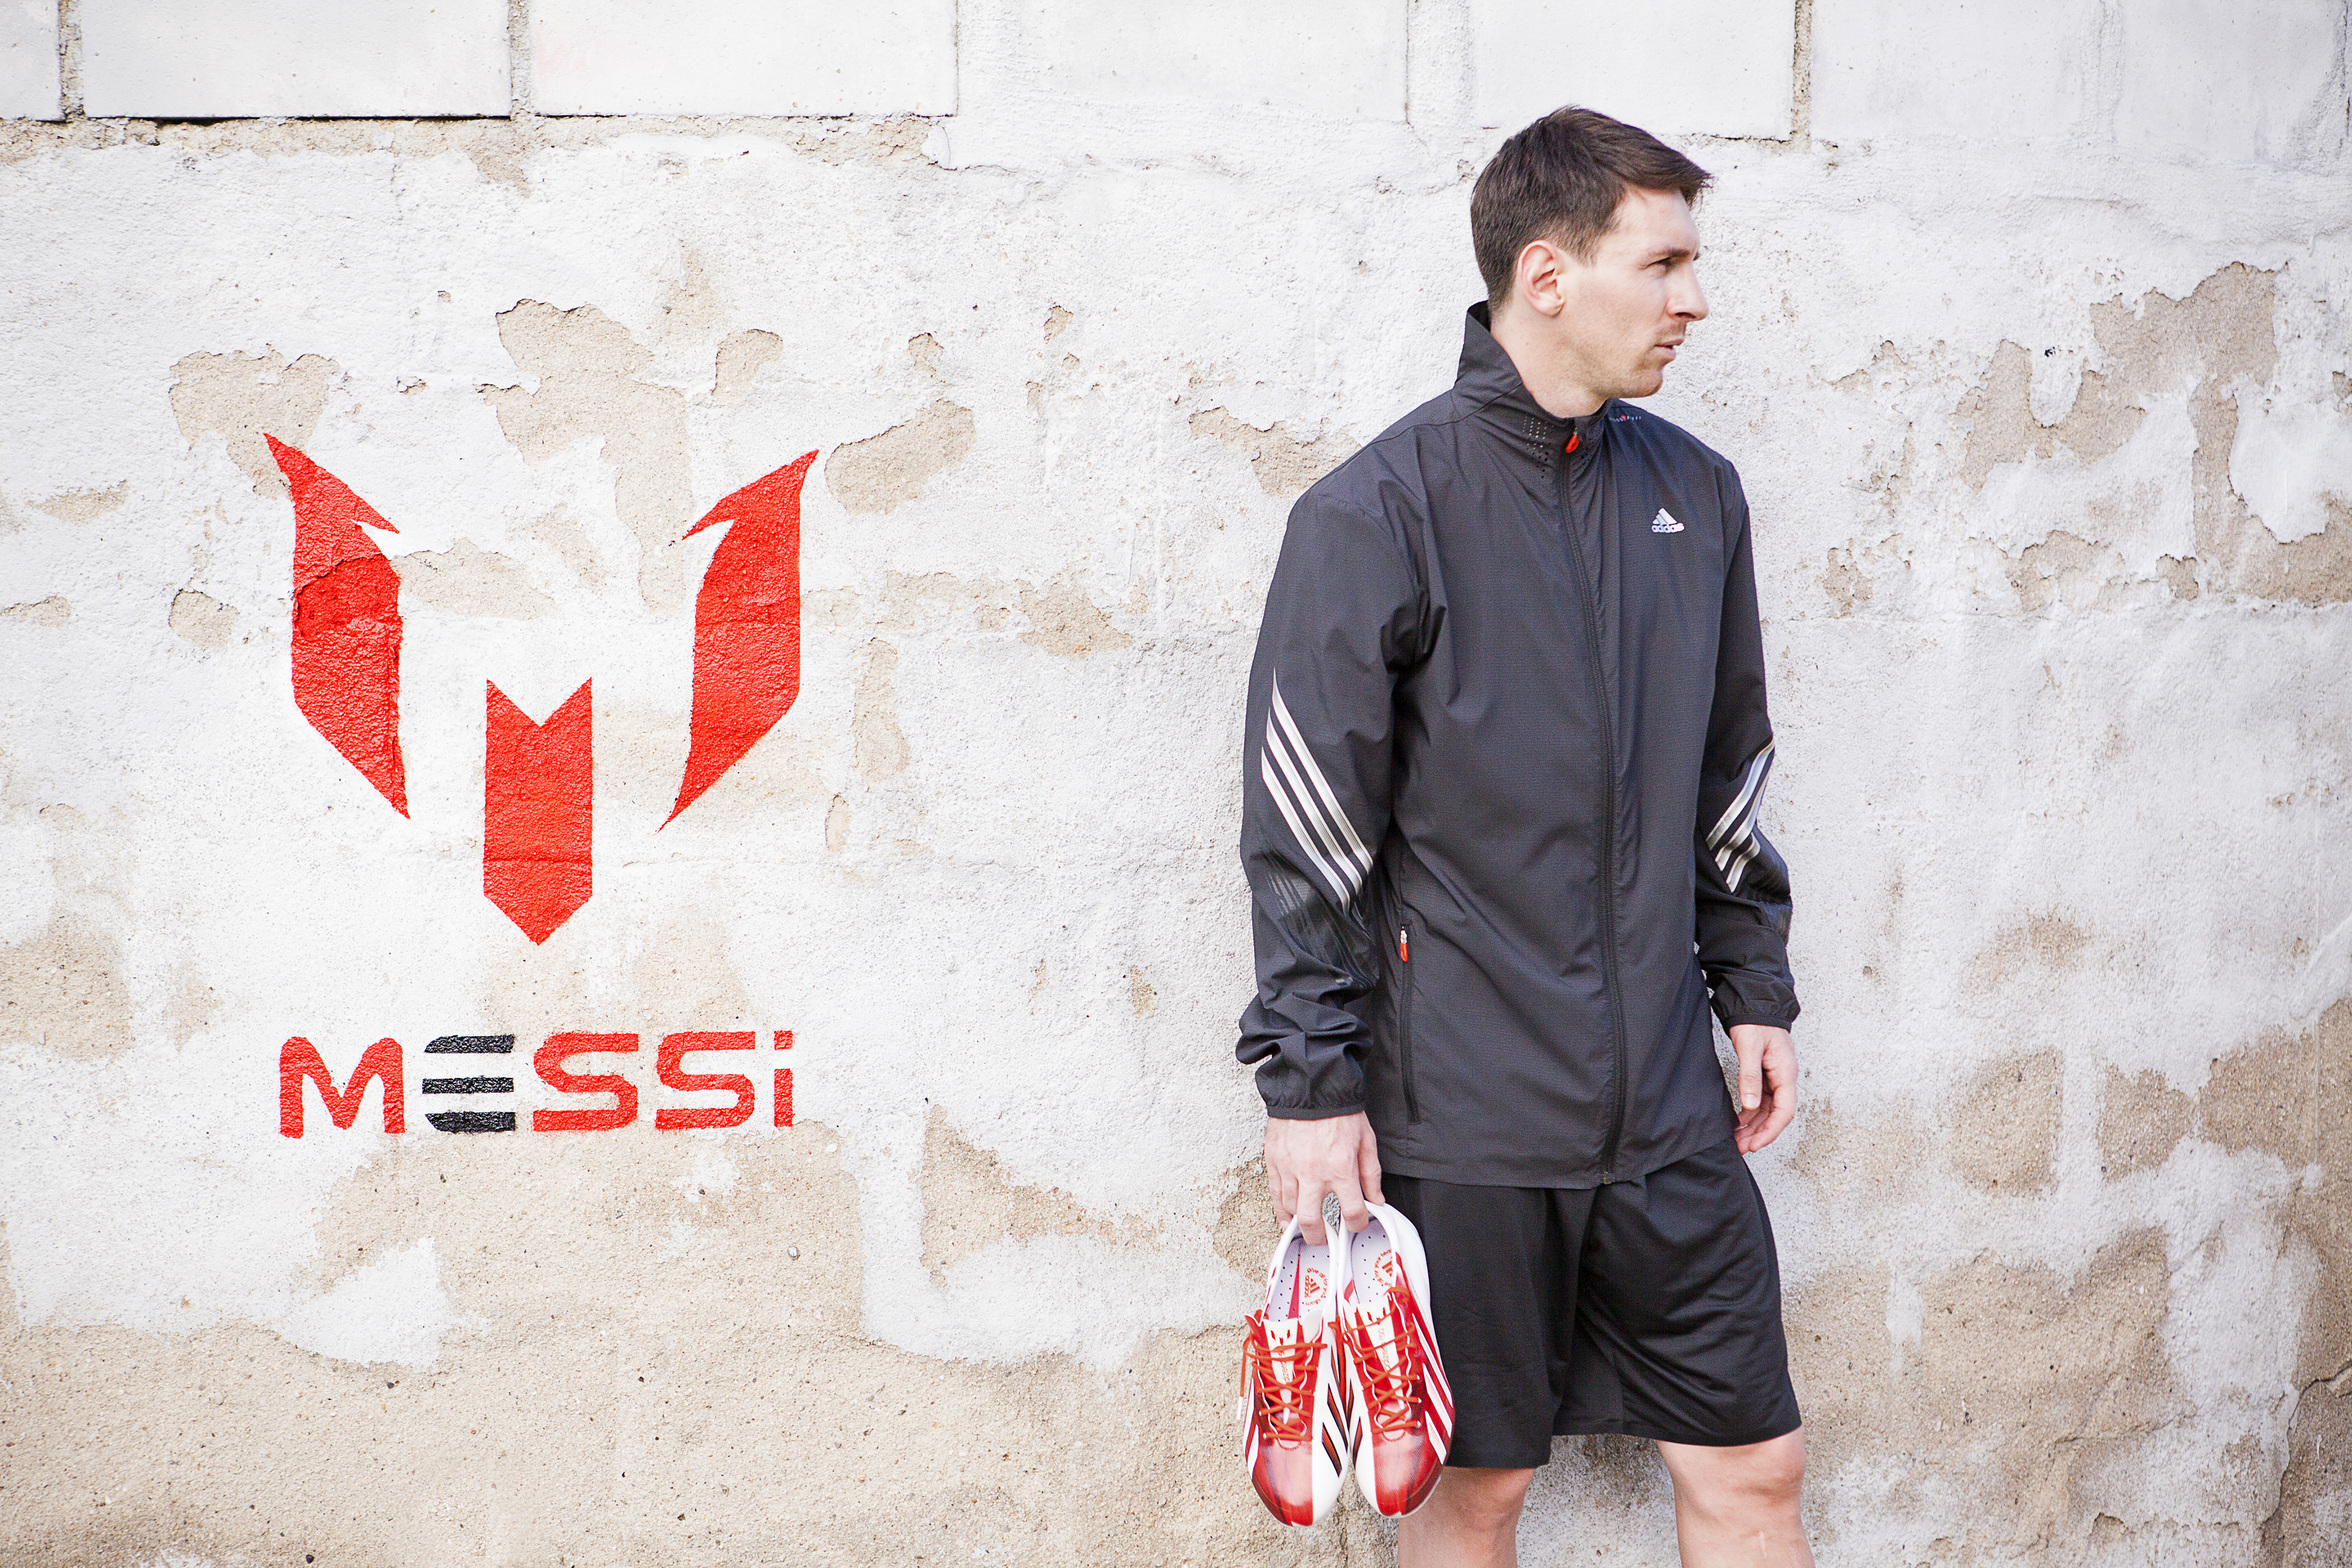 Adidas brings us closer to Lionel Messi with a the adizero f50 , f50 adizero Messi, inspired by the player himself .